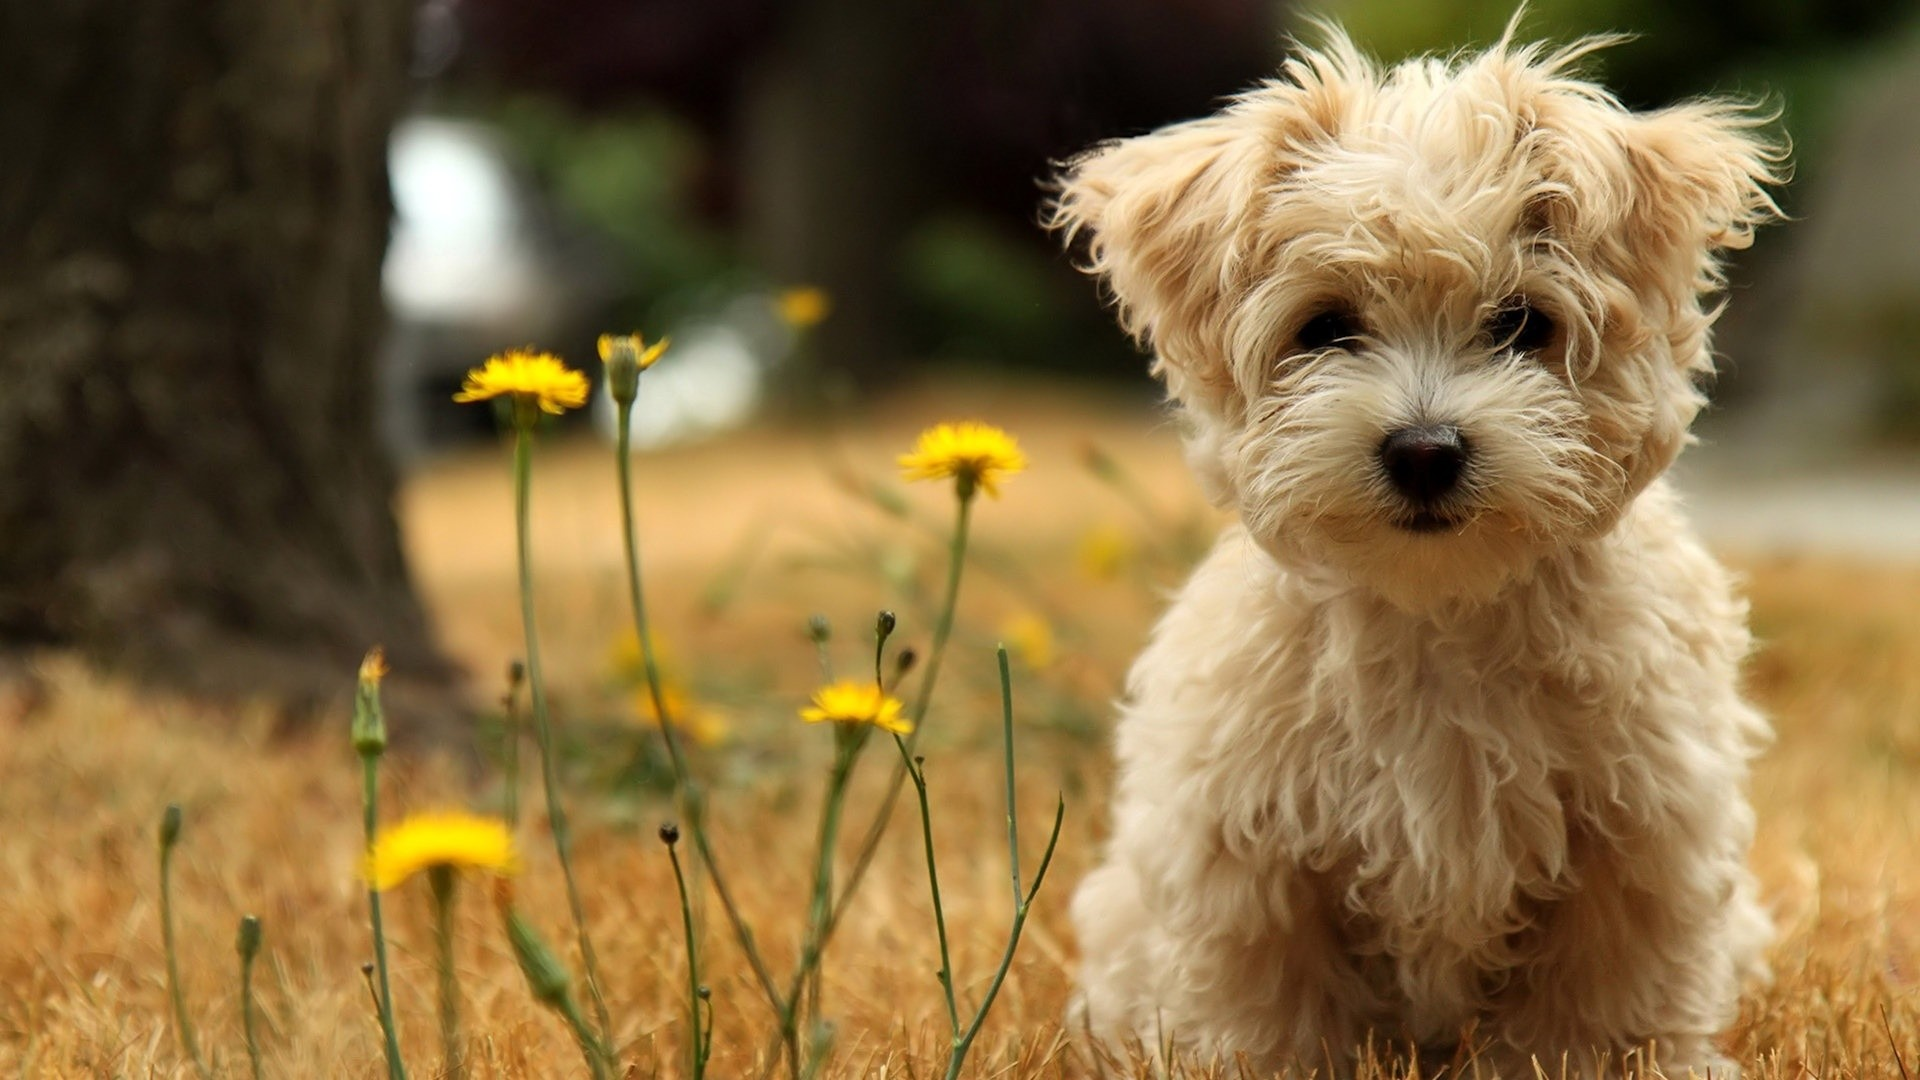 Cute Dog Wallpapers 64 images 1920x1080